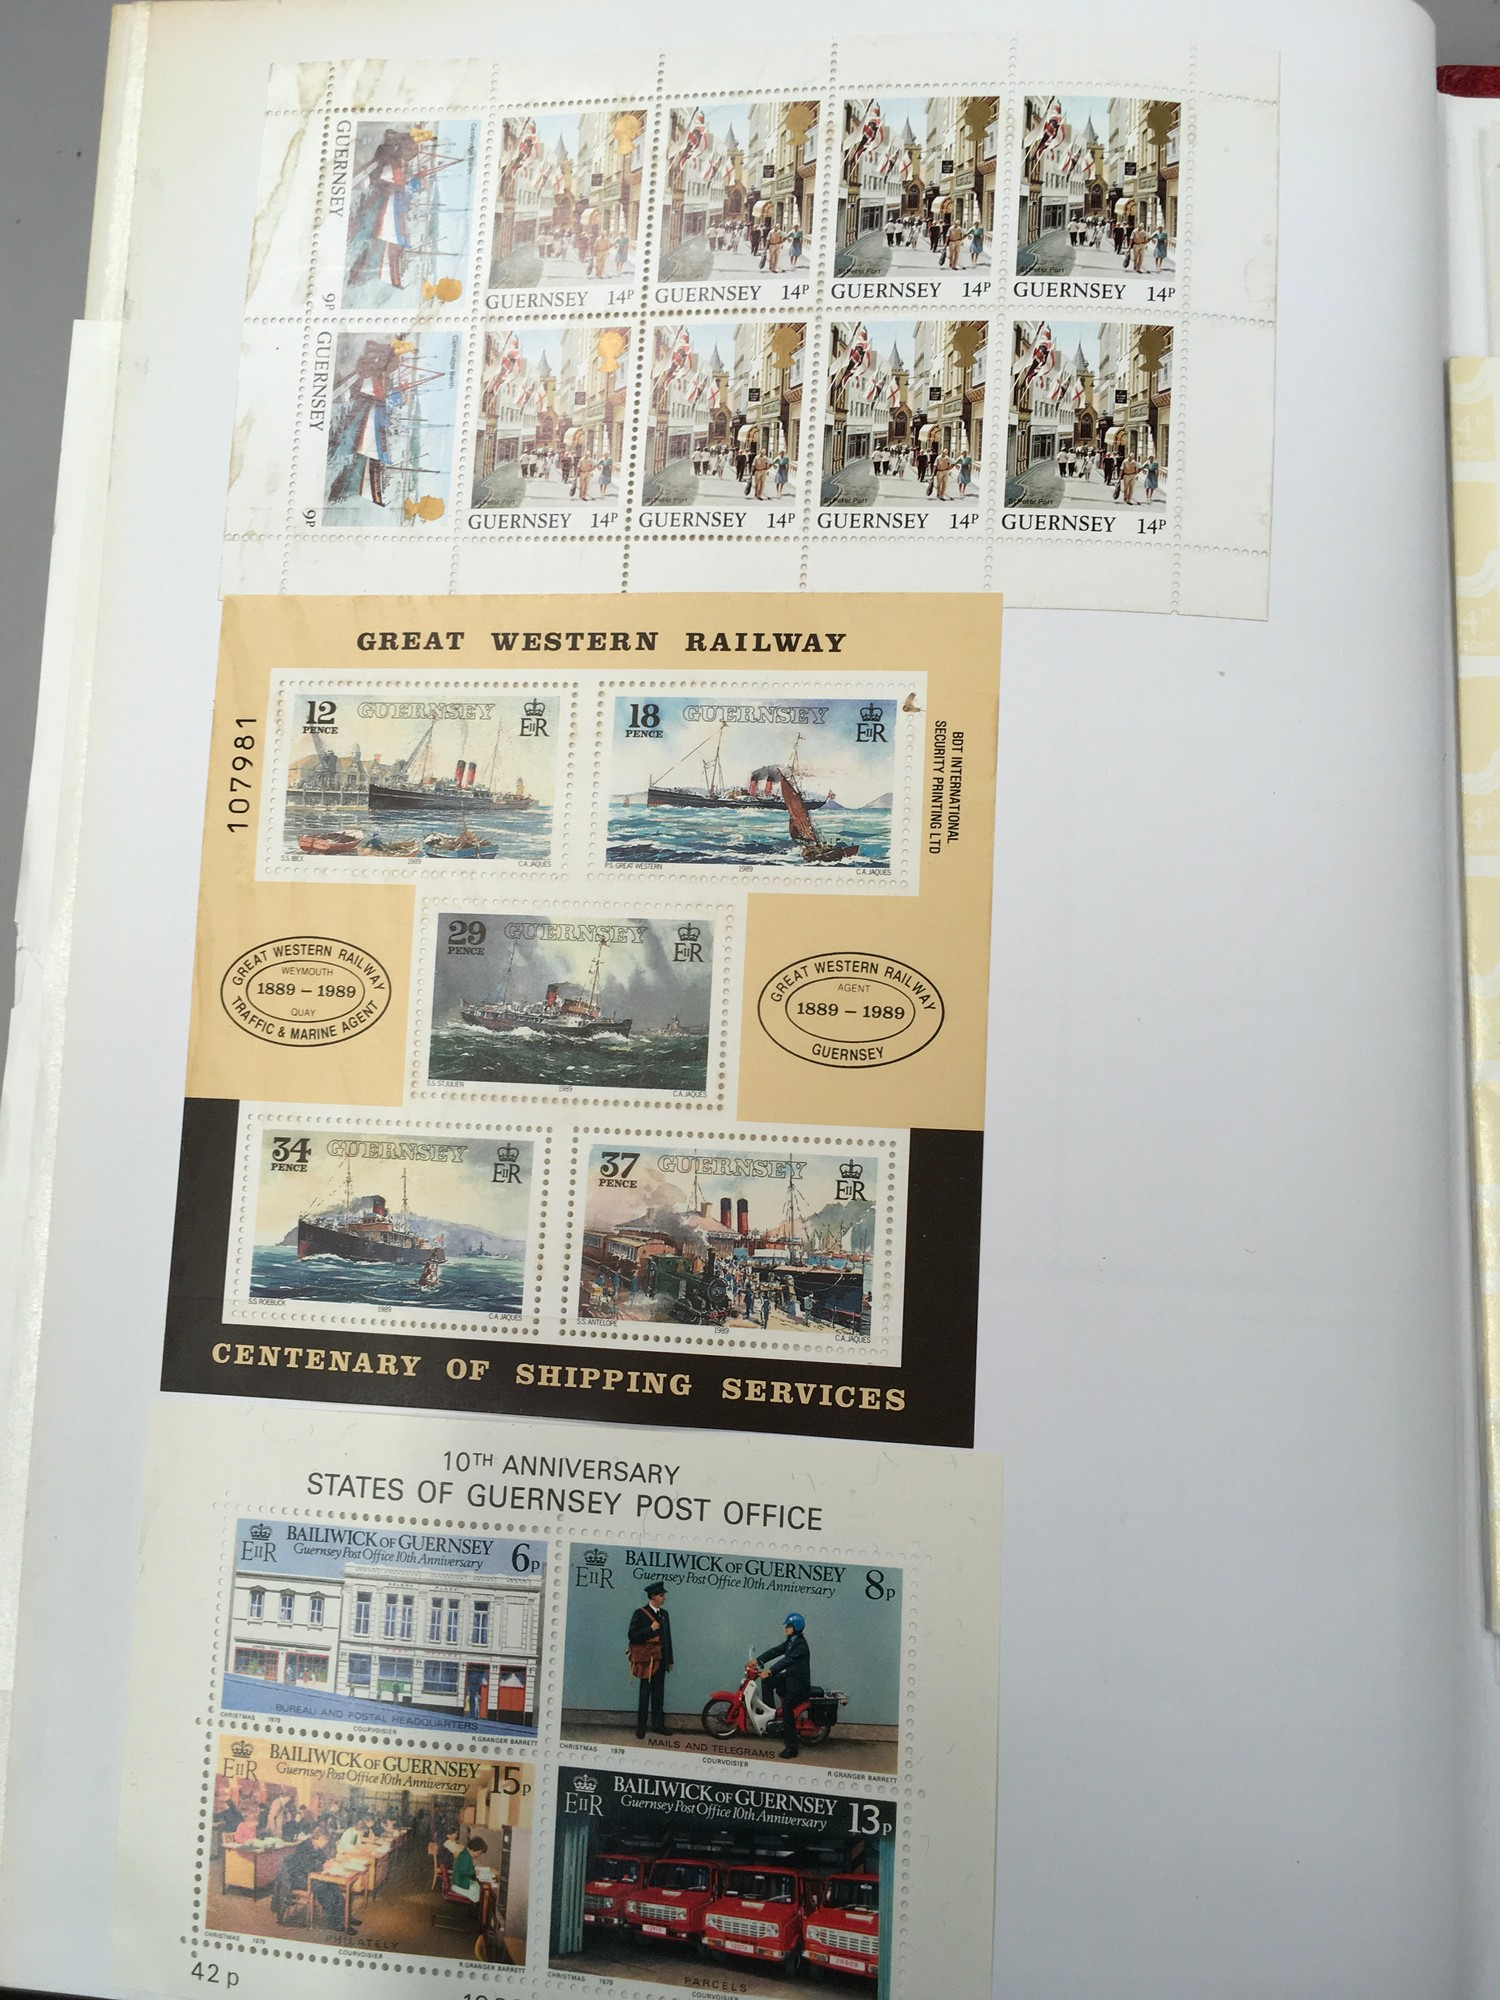 3 x Albums containing Channel Islands, Jersey Guernsey and Alderney over £800 in mint stamps. - Image 10 of 21